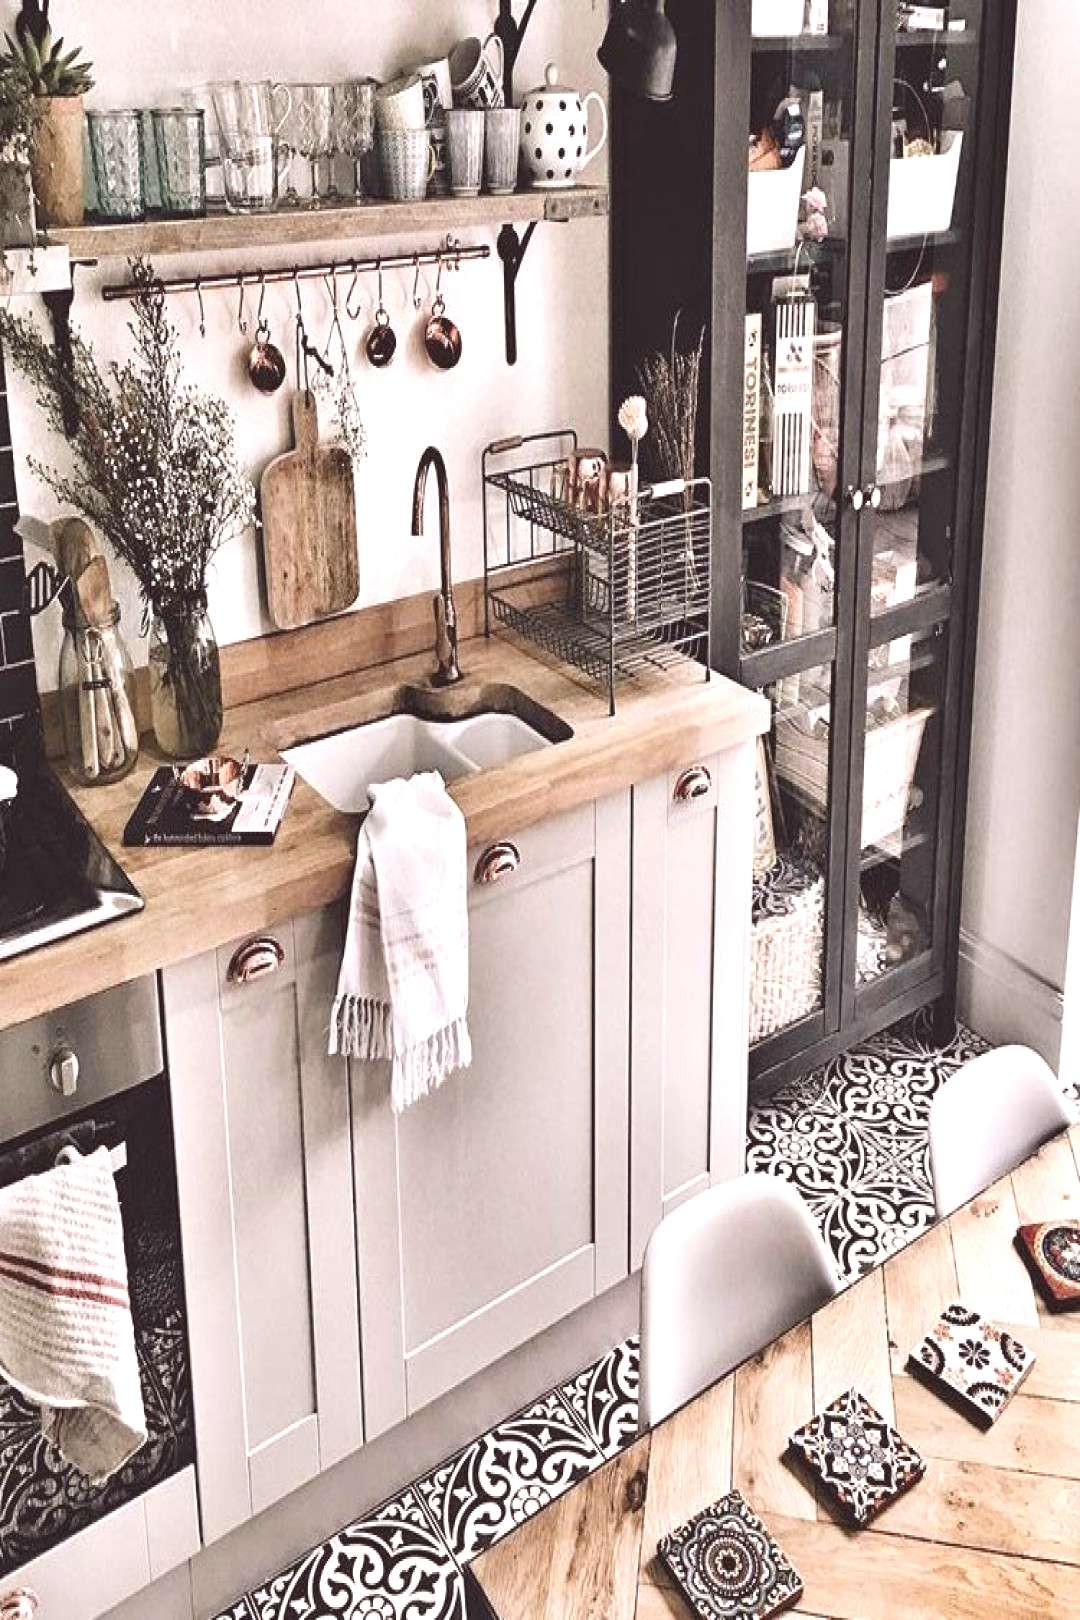 Kitchen Ideas   Vintage floor tiles, wooden counter top with grey cabinets#cabinets